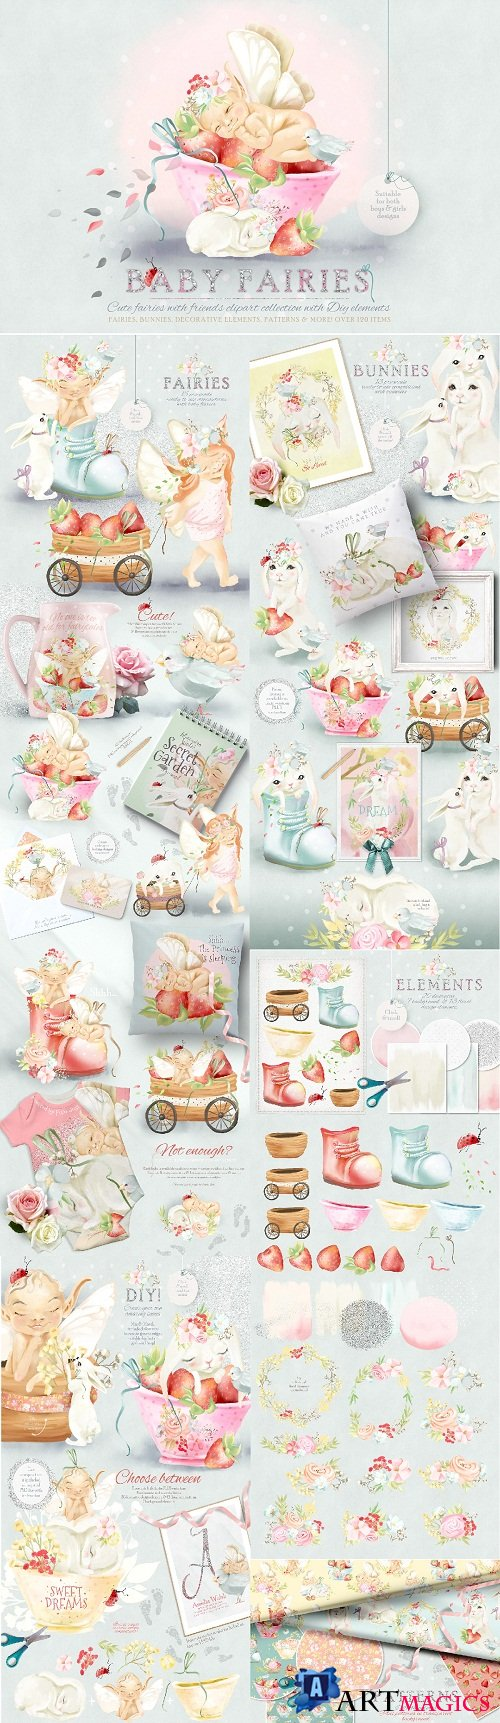 Baby Fairies Clipart Collection 2770171